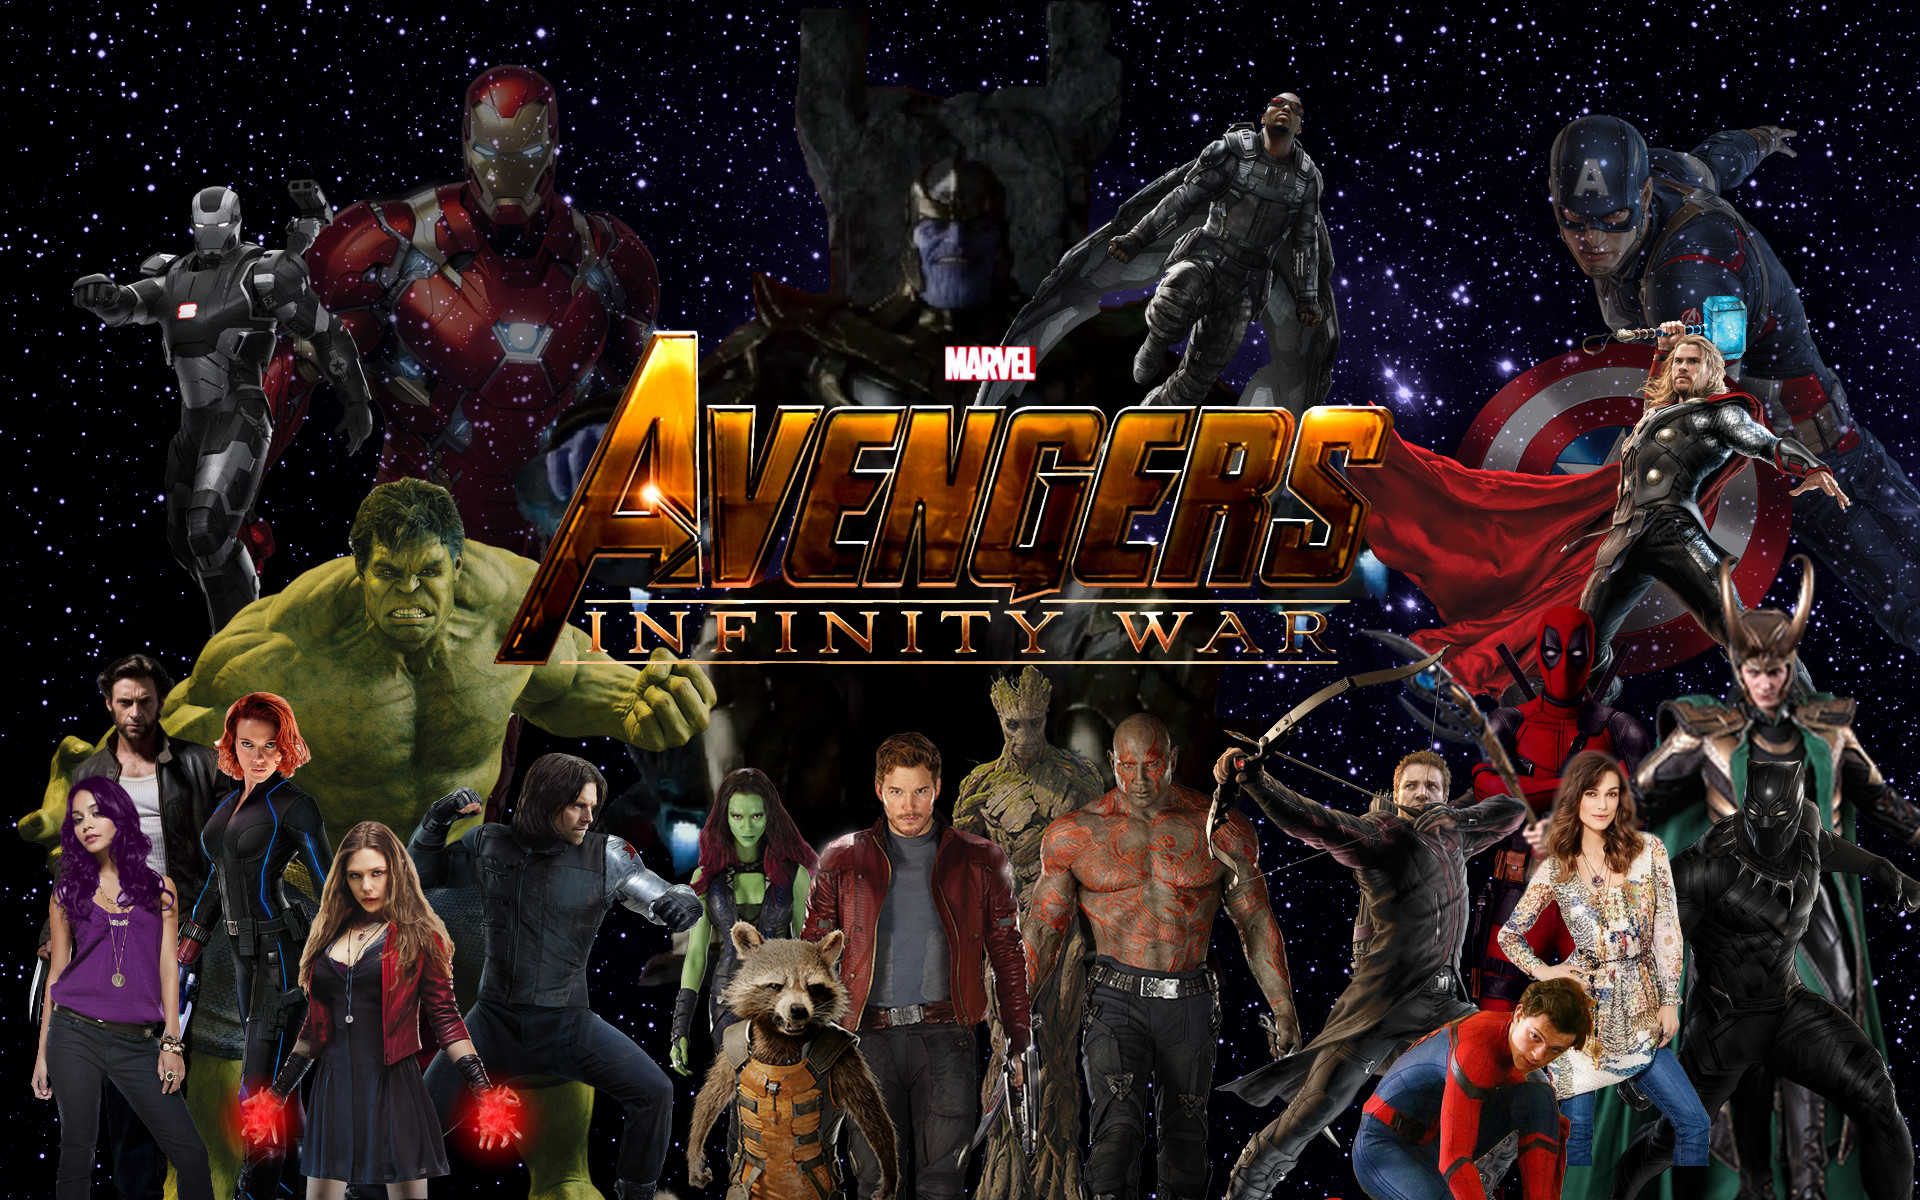 Top Wallpaper Marvel Windows 10 - 888380-top-avengers-infinity-war-wallpapers-1920x1200-for-windows  You Should Have_307056.jpg